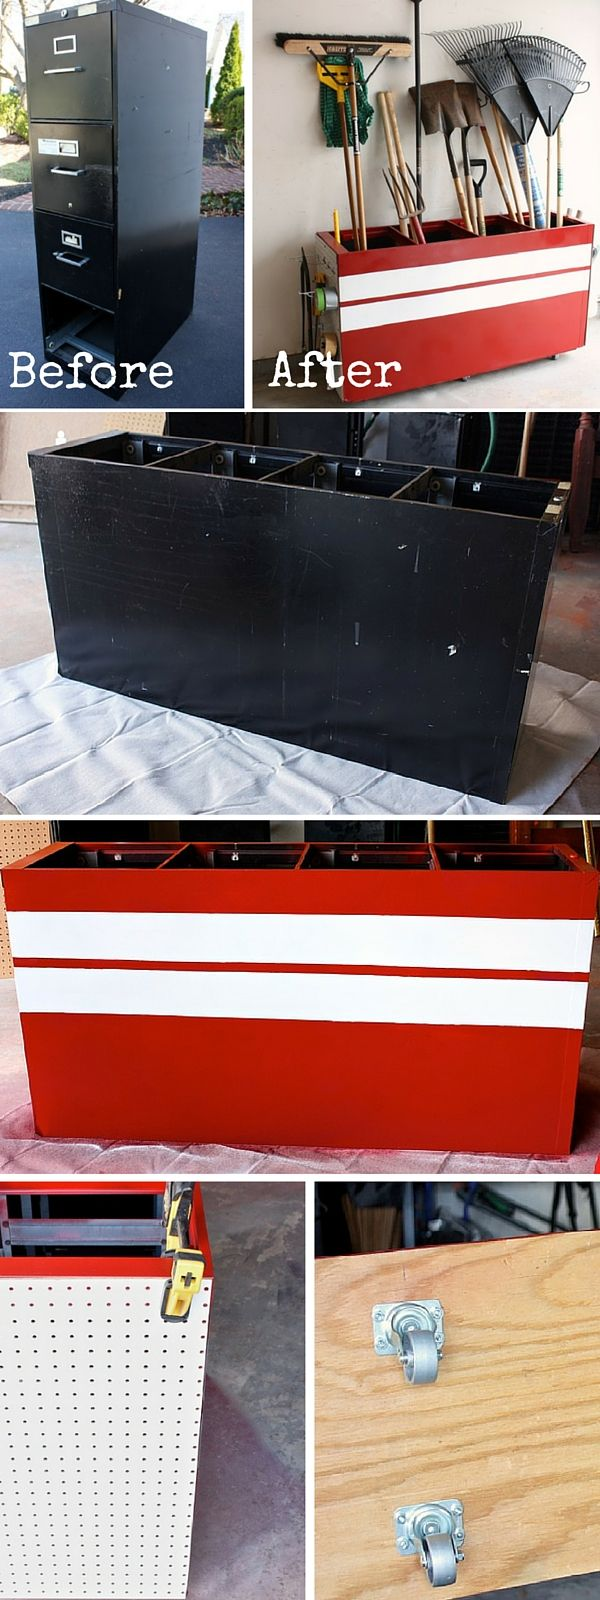 Check out the tutorial: #DIY Turn an Old Filing Cabinet into a Garage Storage Unit #crafts